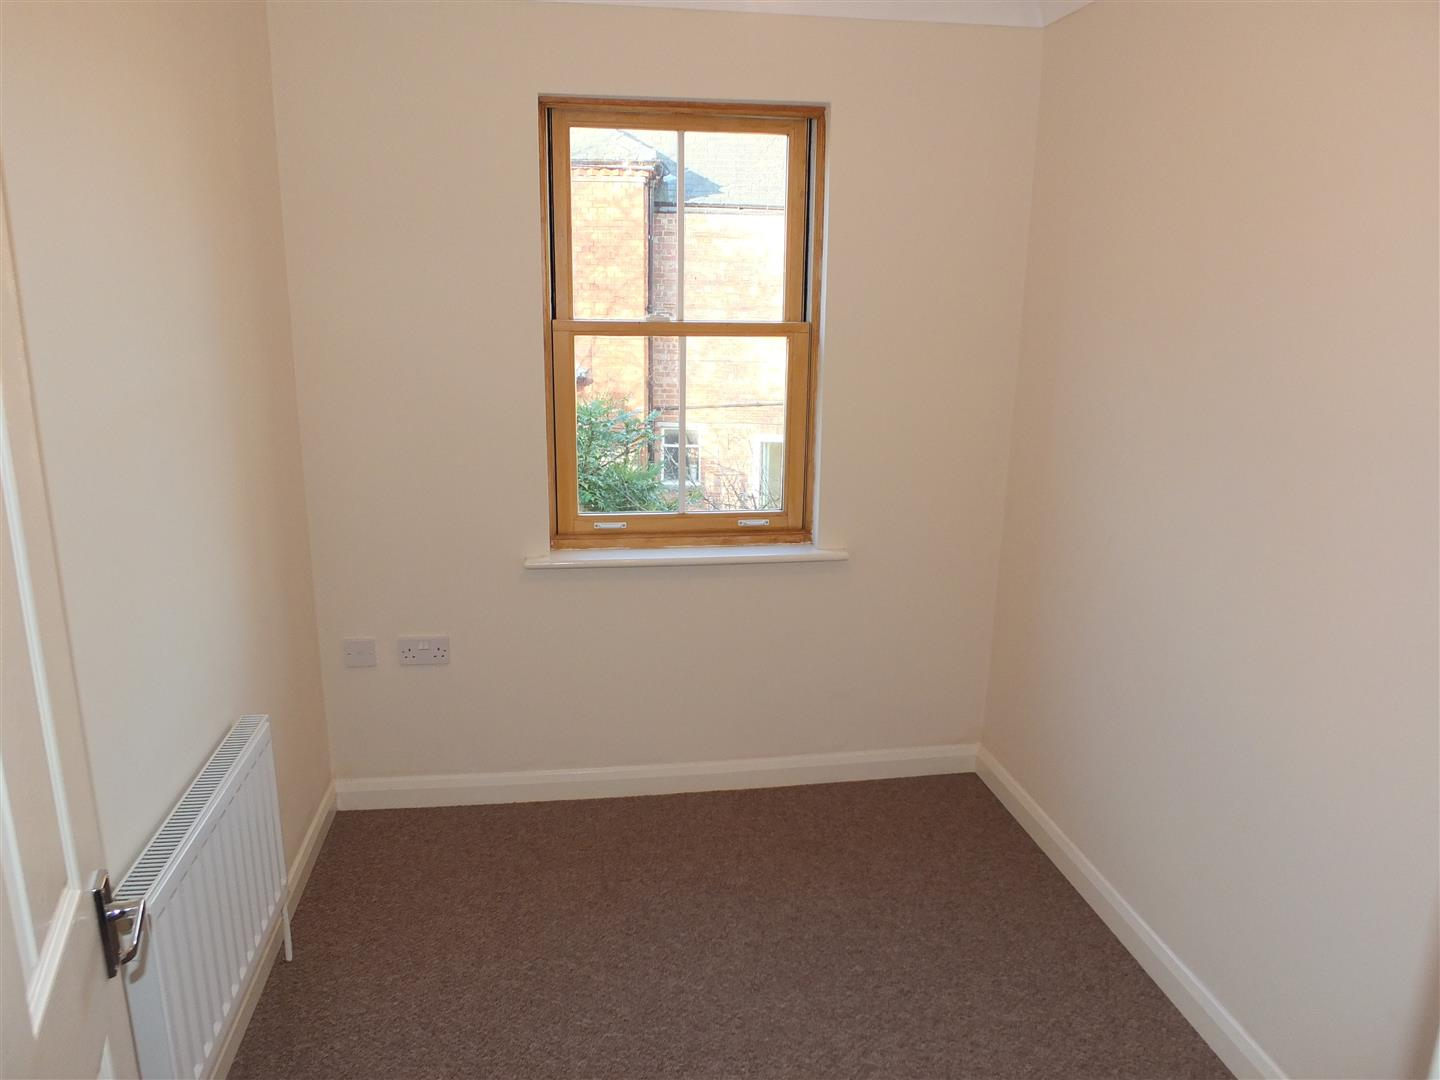 3 bed house to rent in Holbeach Spalding, PE12 7DR 9